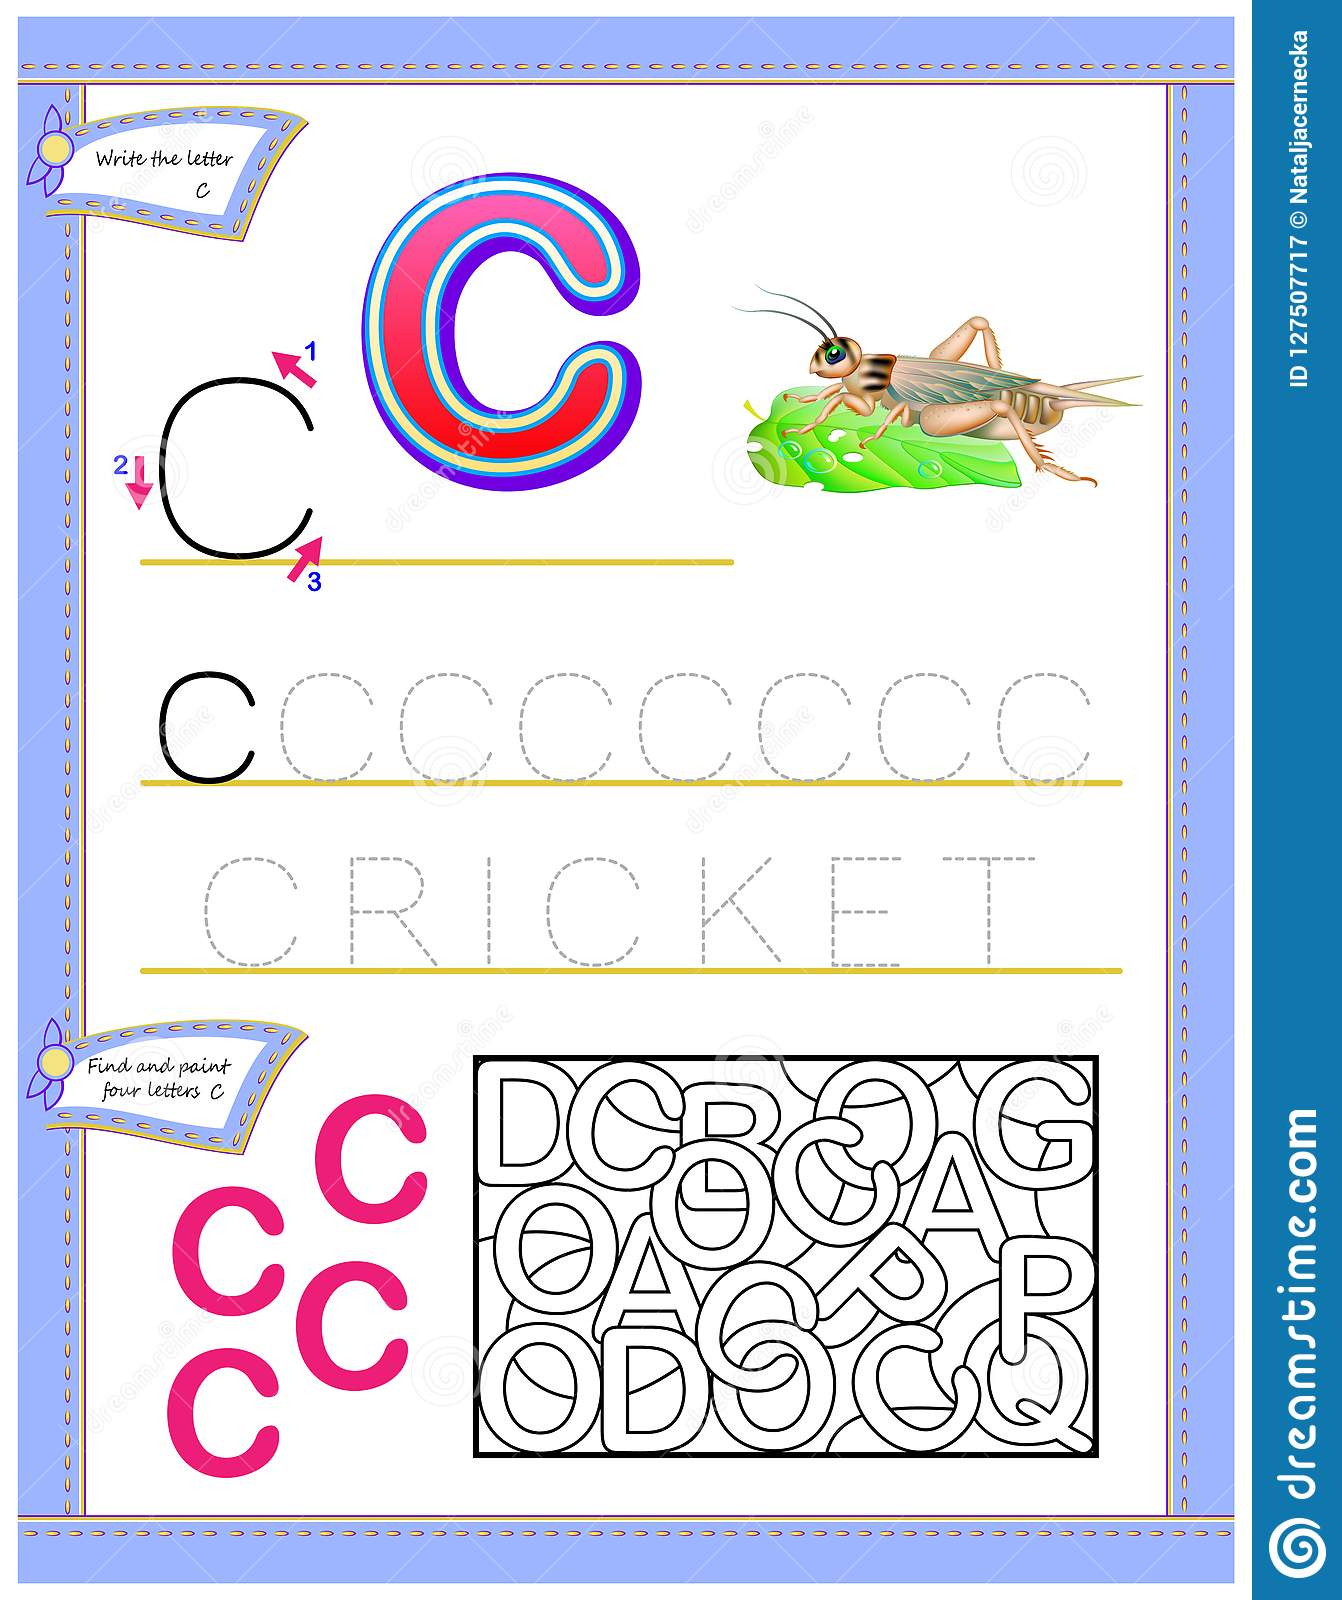 Worksheet For Kids With Letter C For Study English